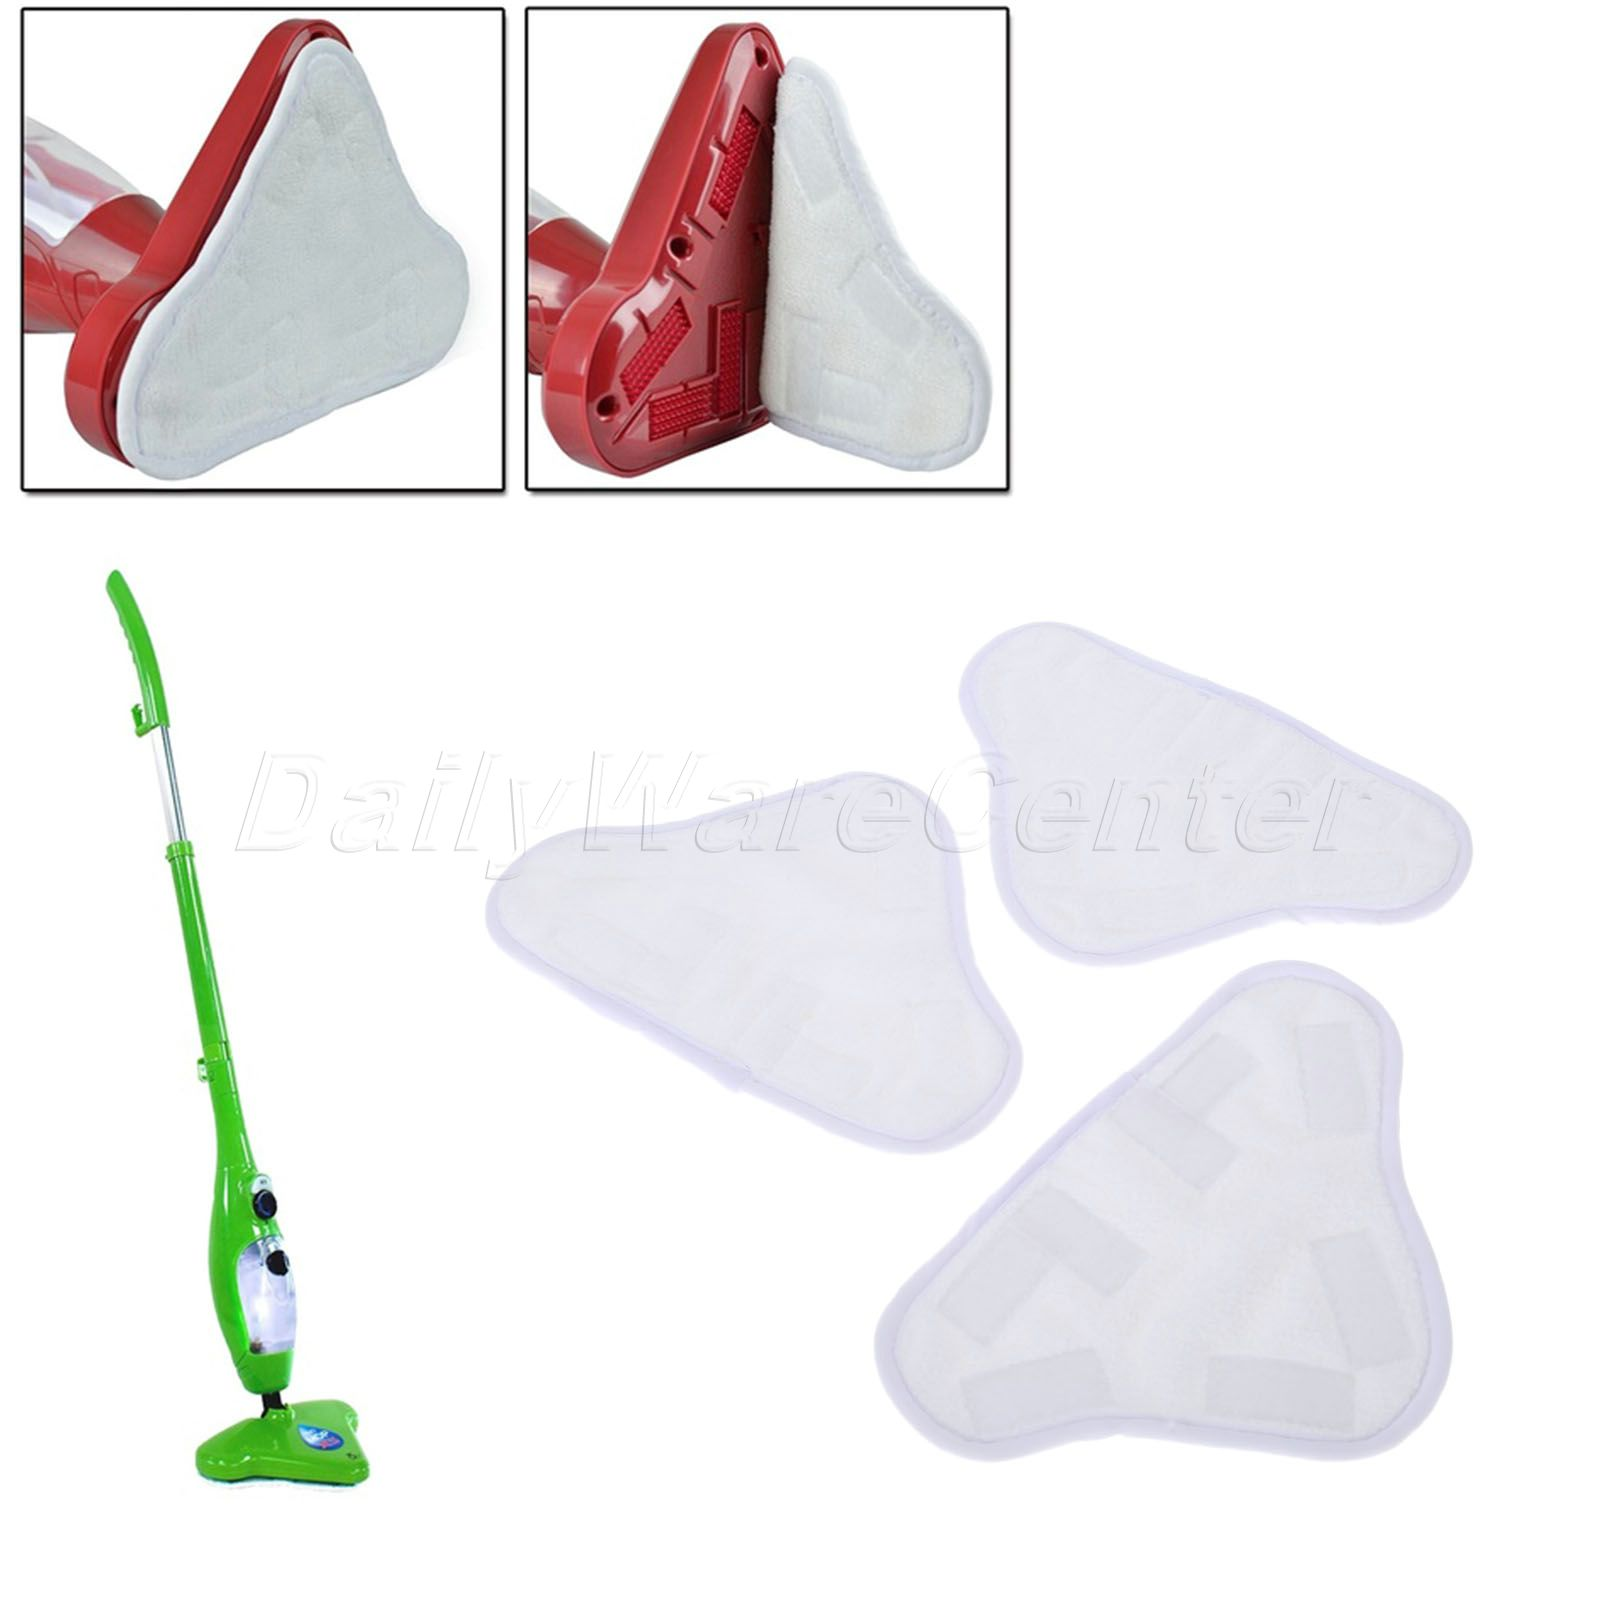 3Pcs/Set Microfiber Replacement Pads Washable Reusable Cleaning Cloth For X5 H2O Steam Mop Pads Kit Cleaning Tools High Quality